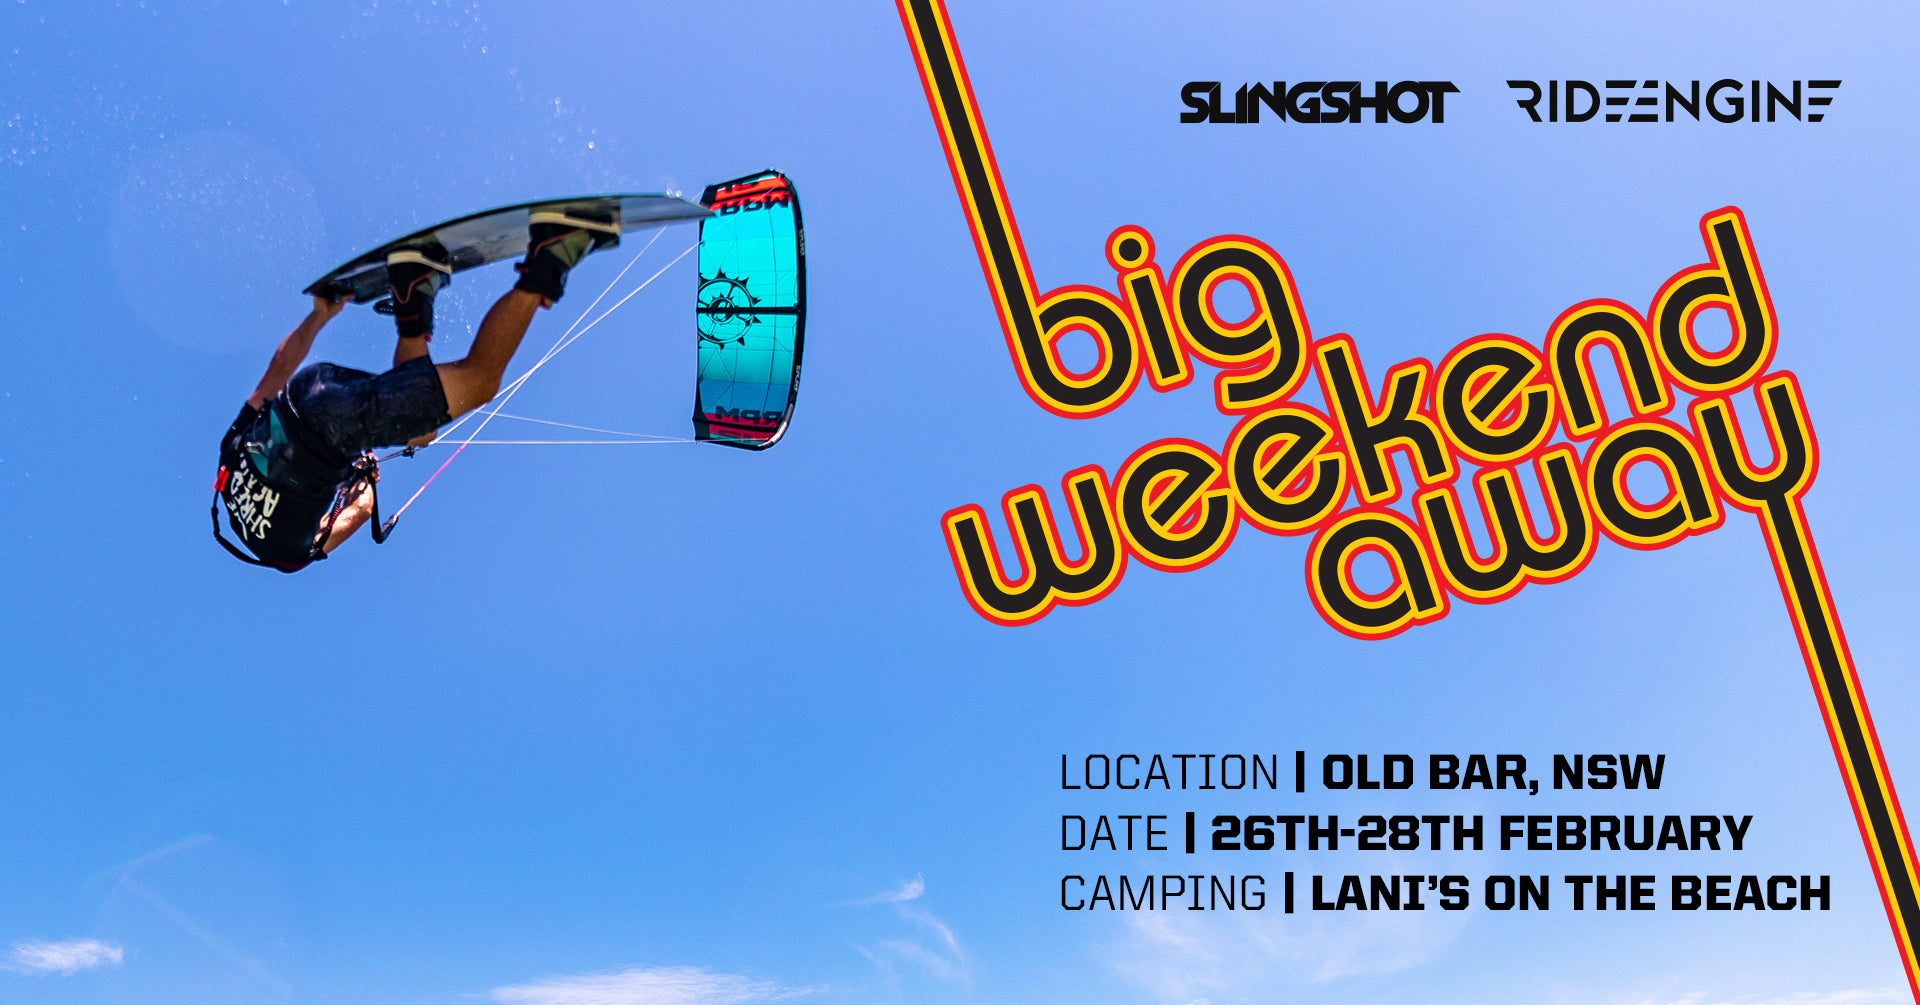 Big Weekend Away Old Bar New South Wales event kiteboarding